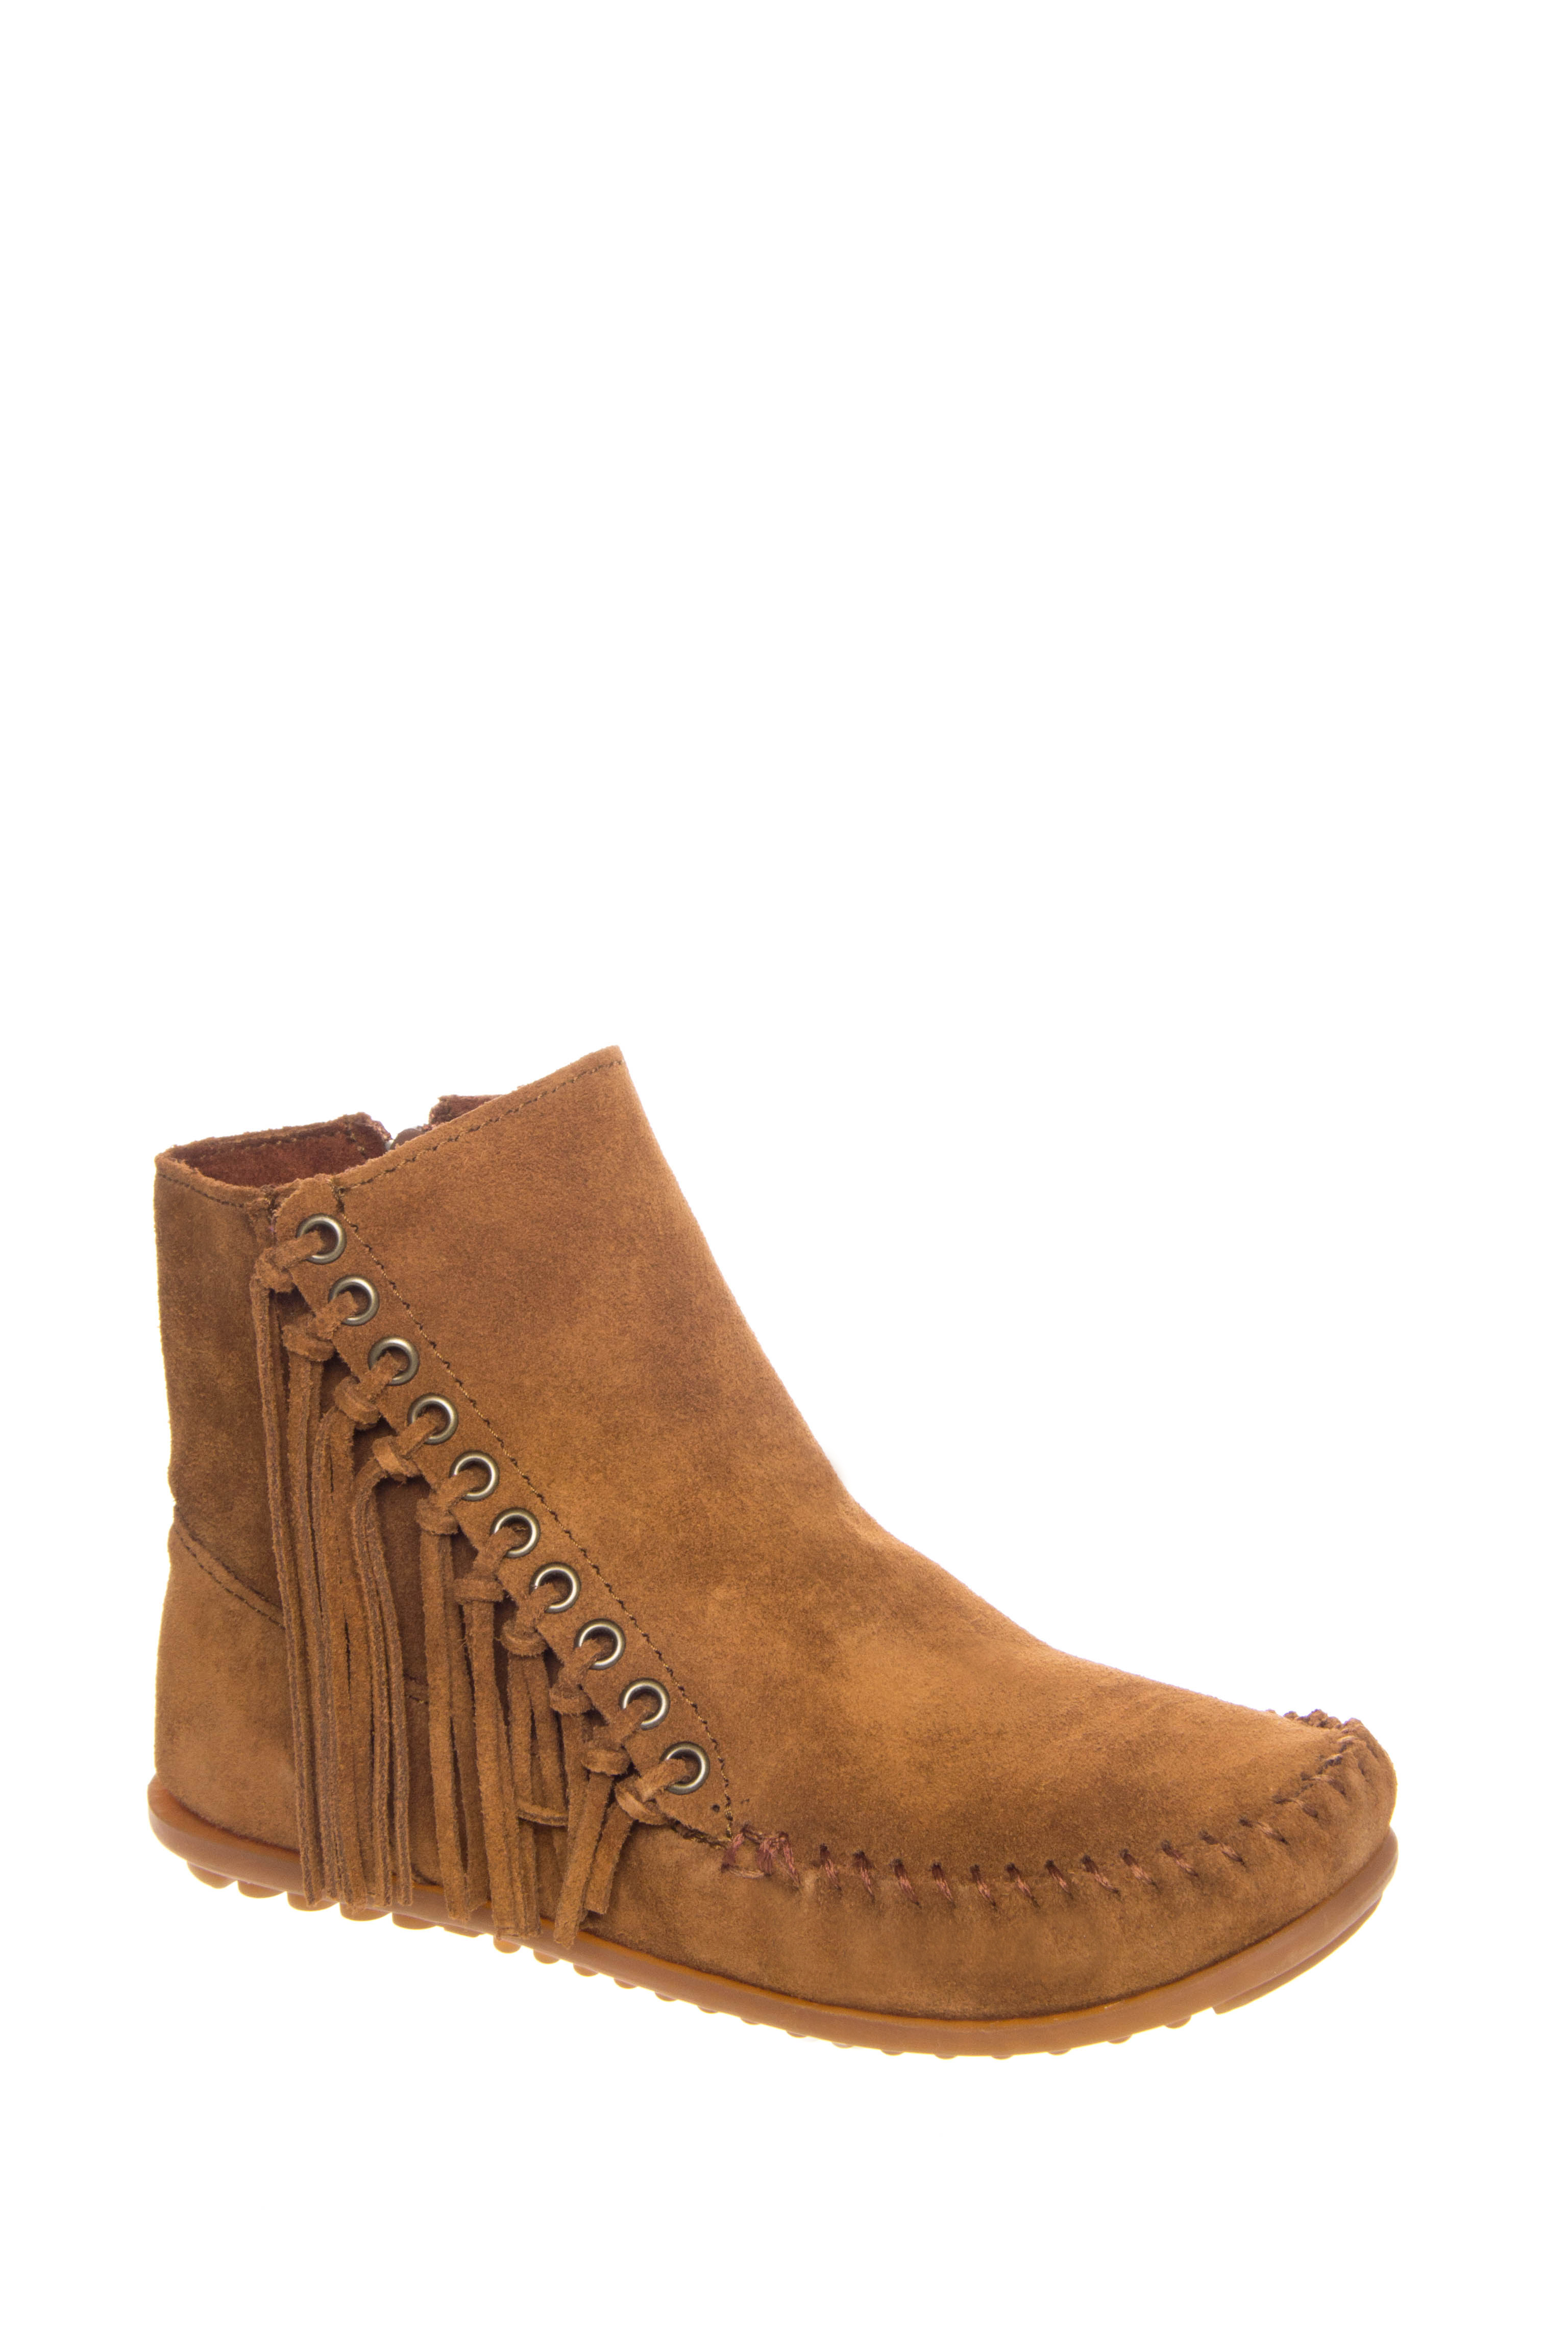 Minnetonka Willow Suede Fringe Booties - Dusty Brown